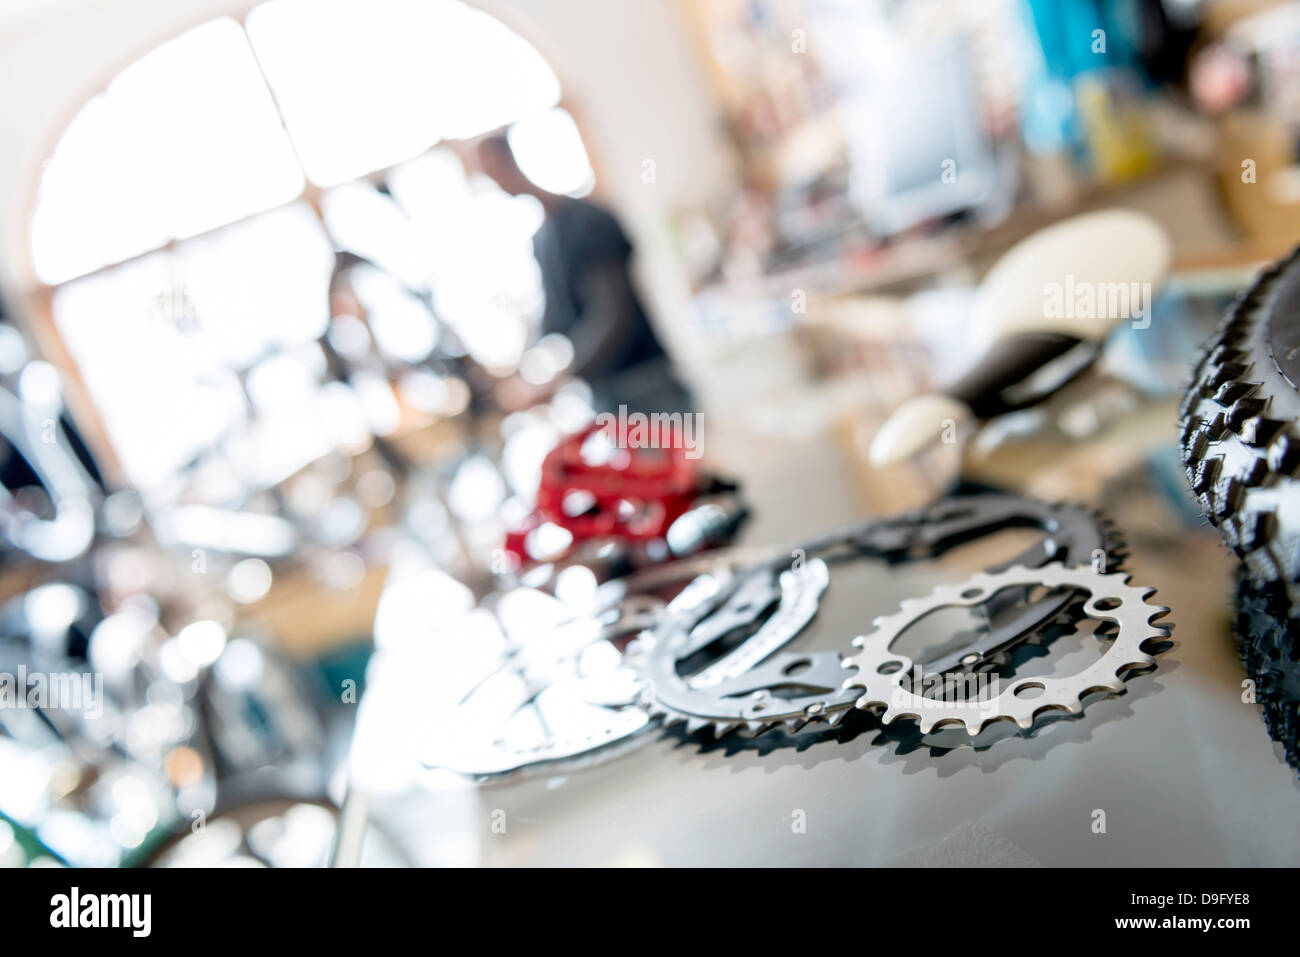 Bicycle mechanic at work in Bike Shop - Stock Image